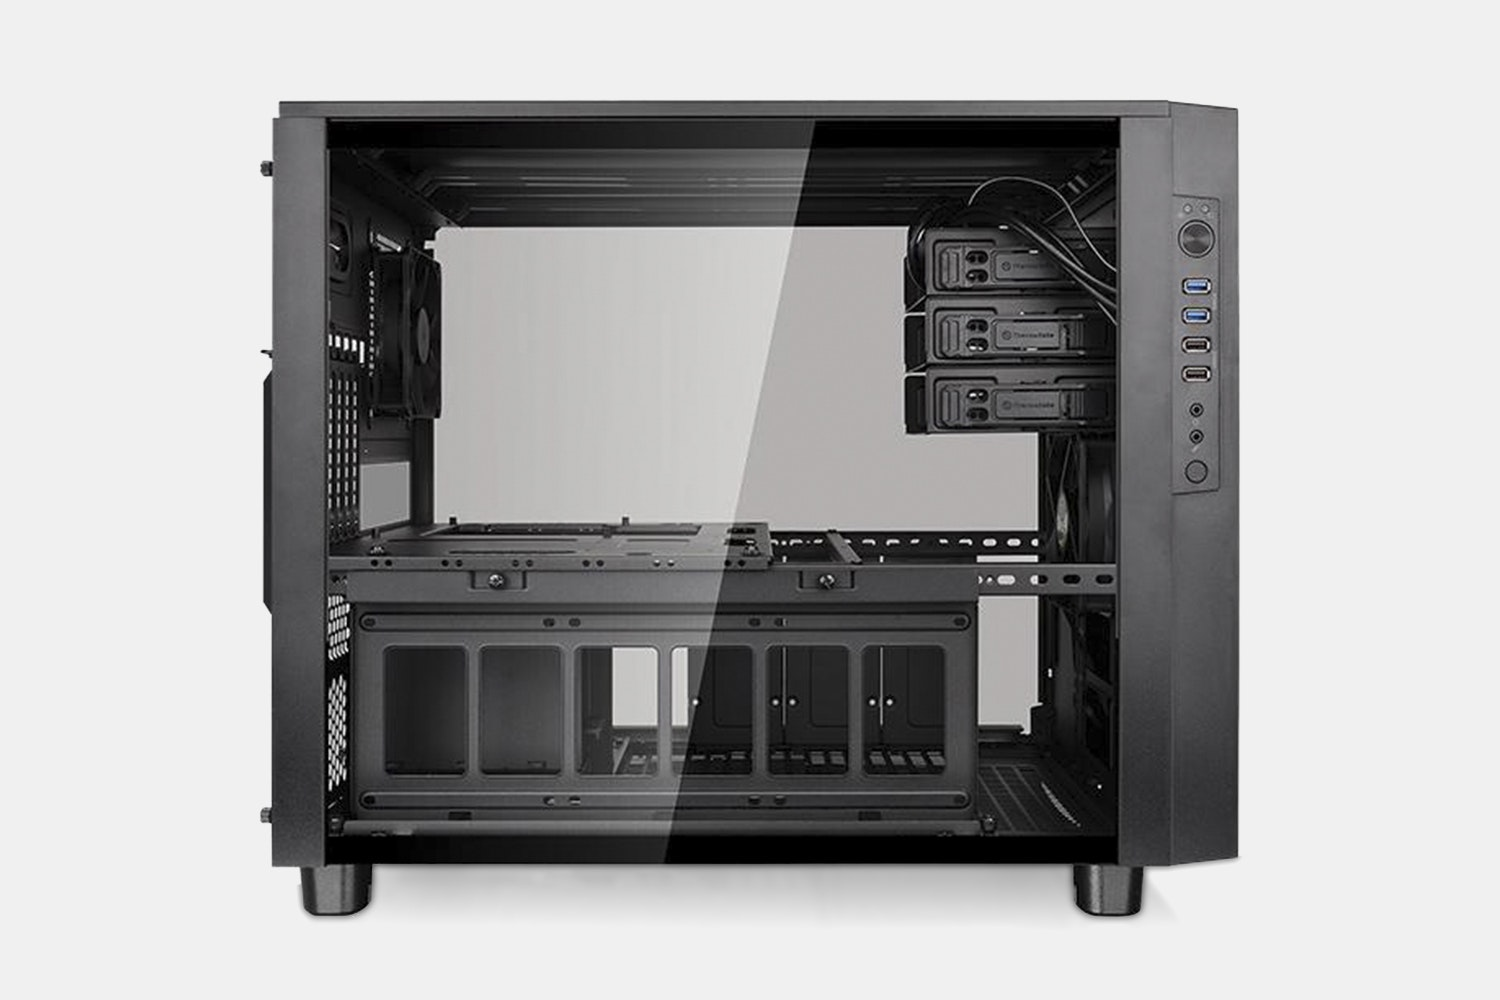 TT Core X5 Tempered Glass Chassis (Black Edition)